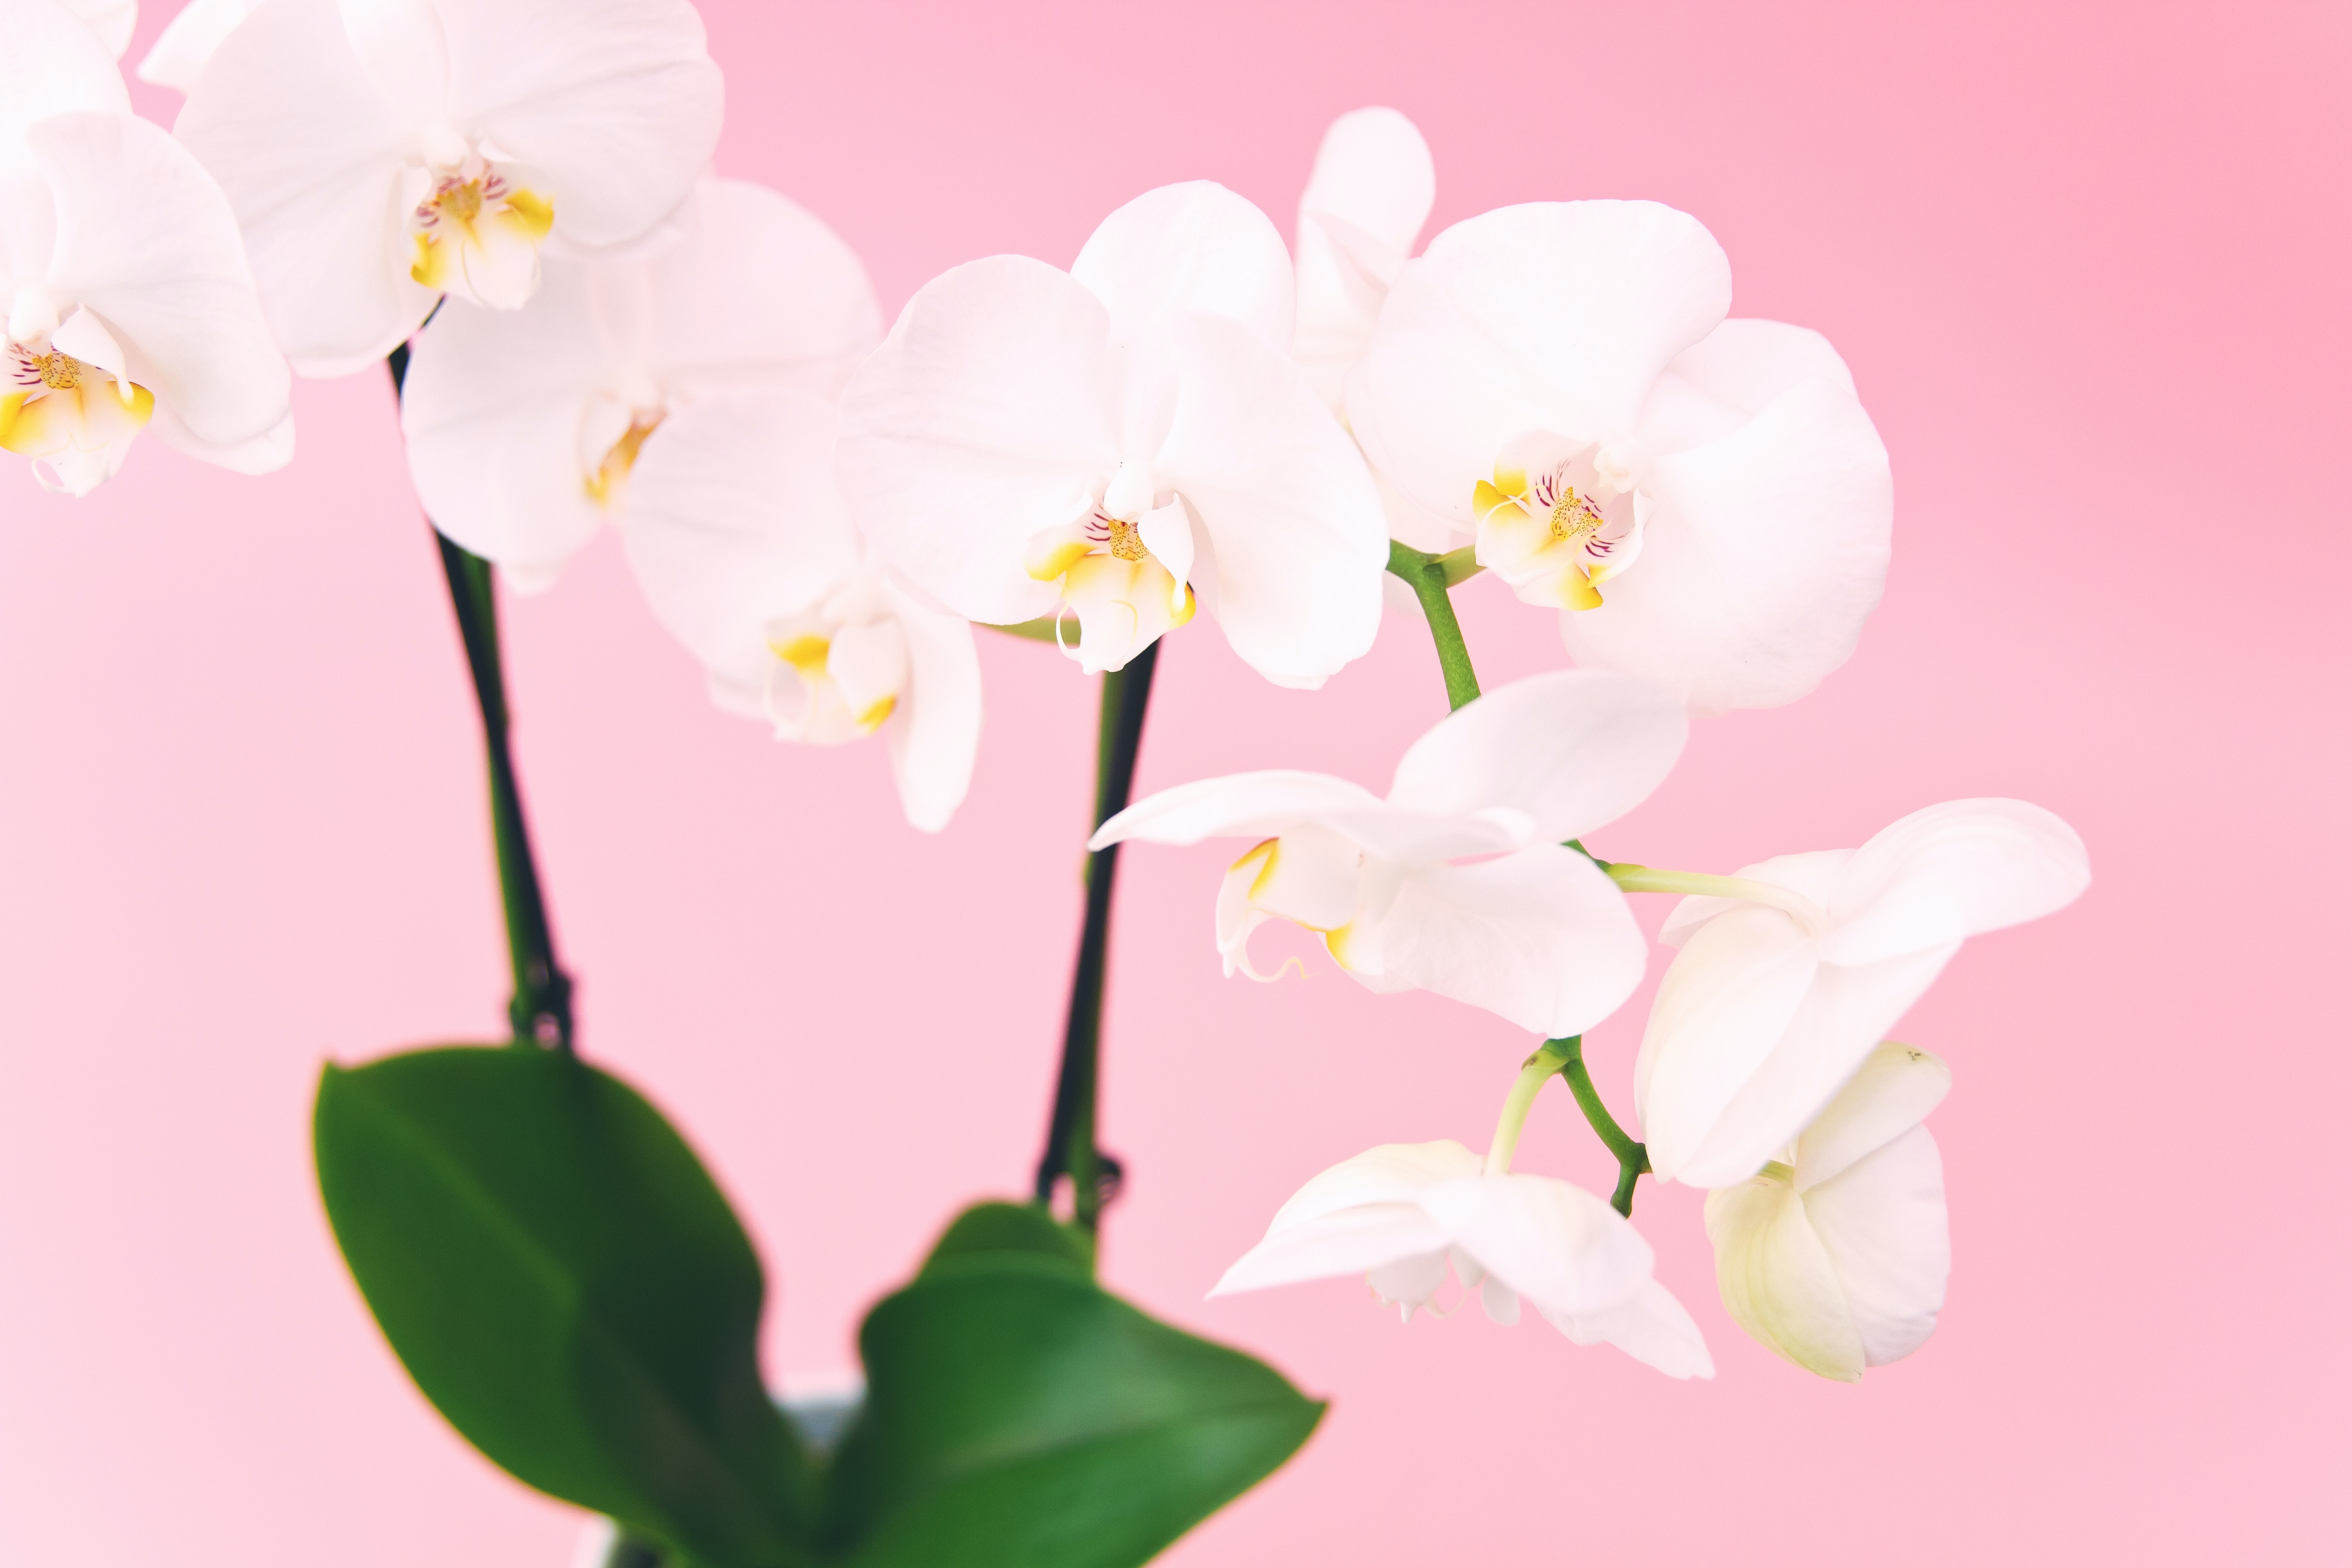 White flowers with a pink background.